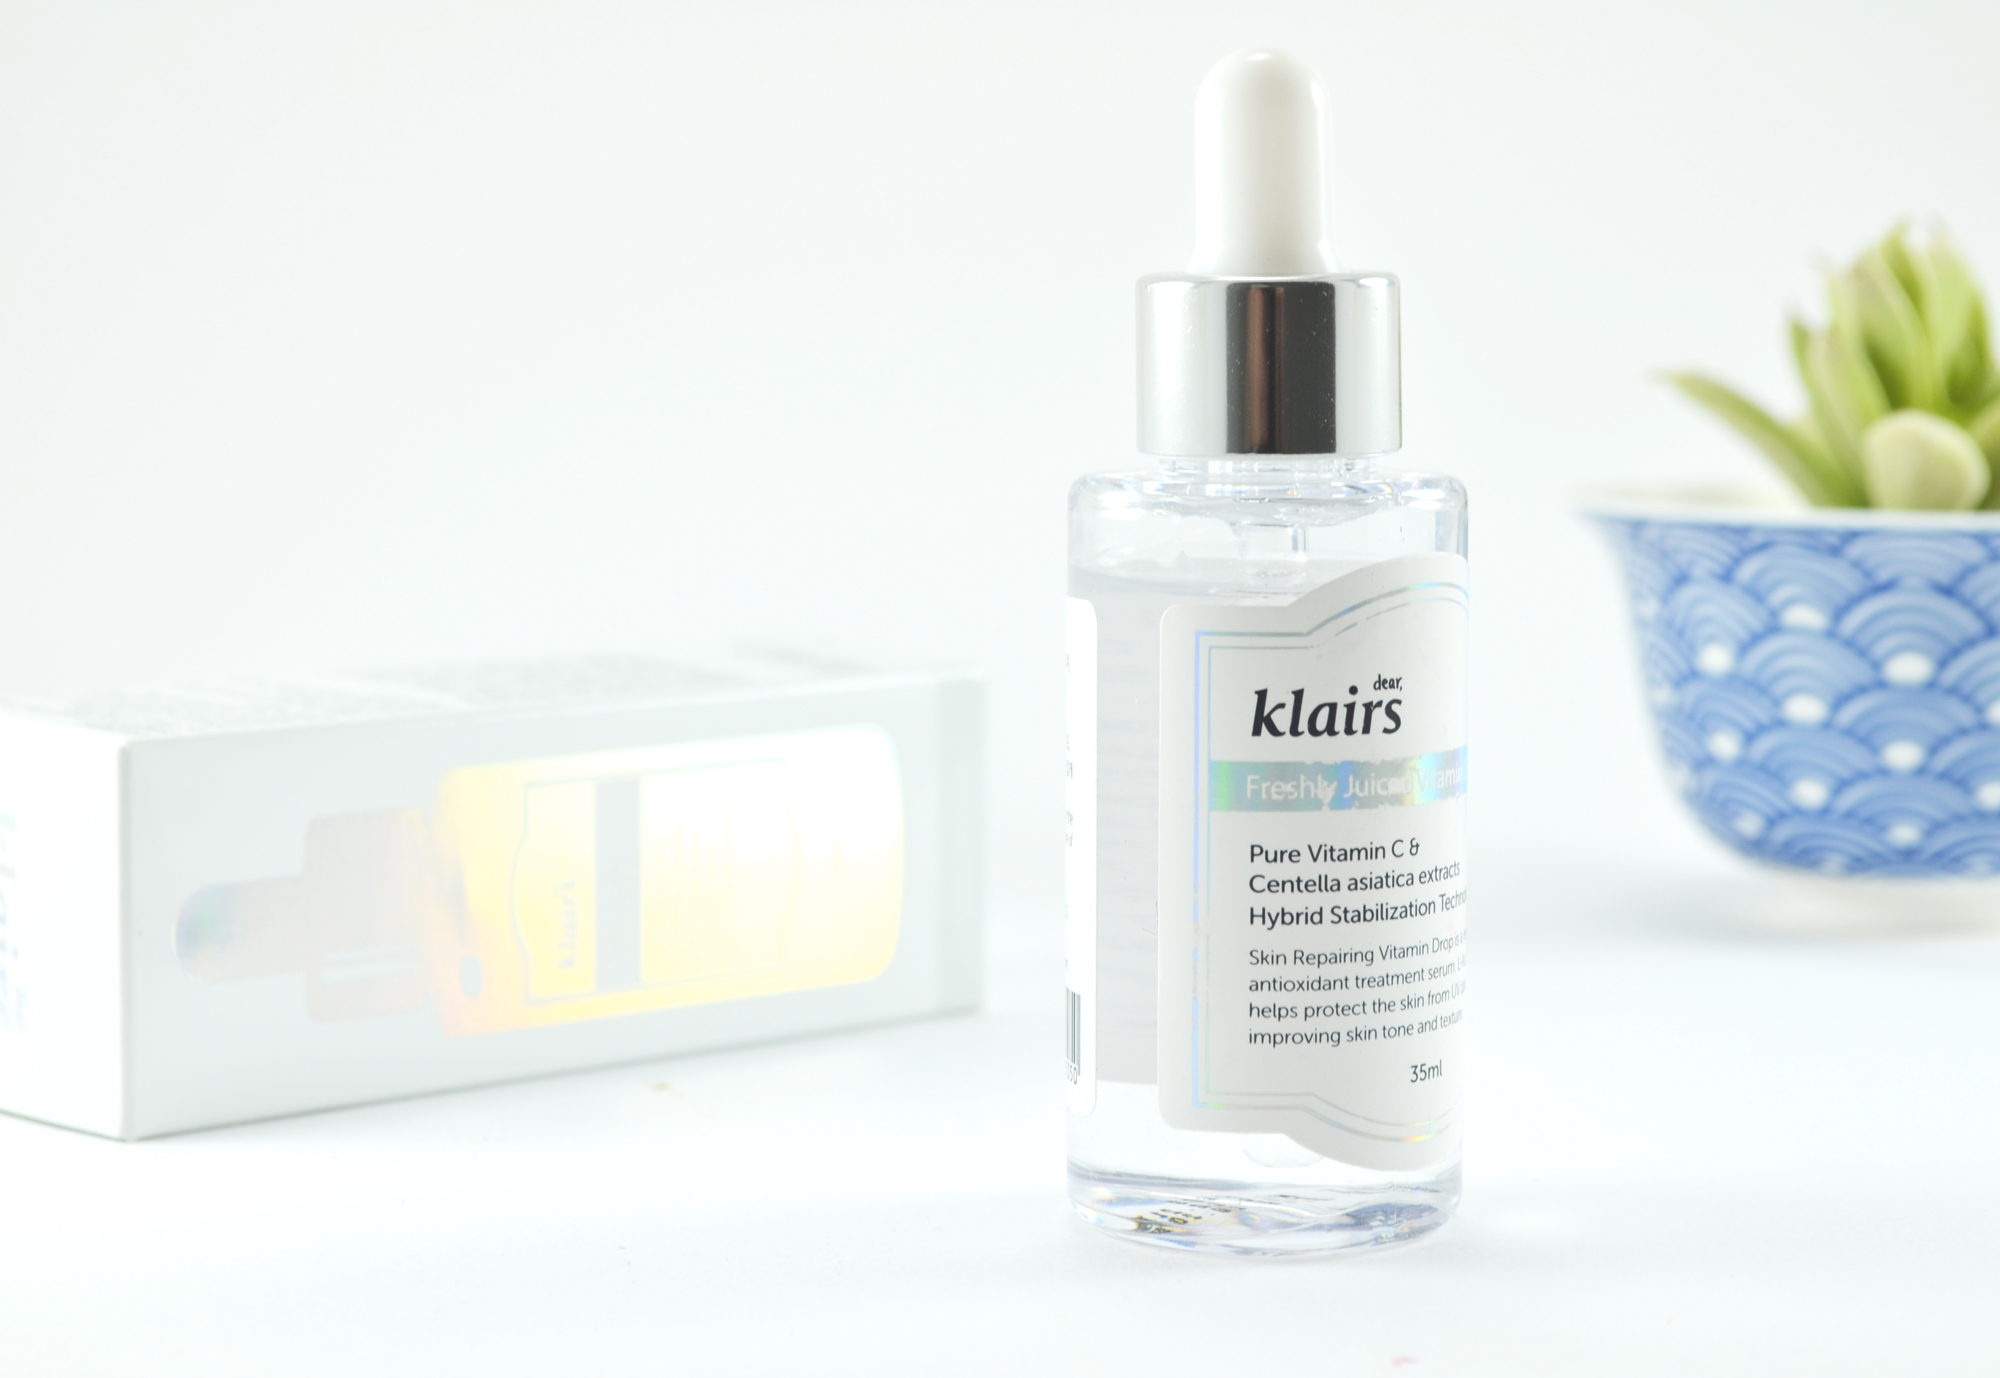 klairs-freshly-juiced-vitamin-drop-serum-a-la-vitamine-c